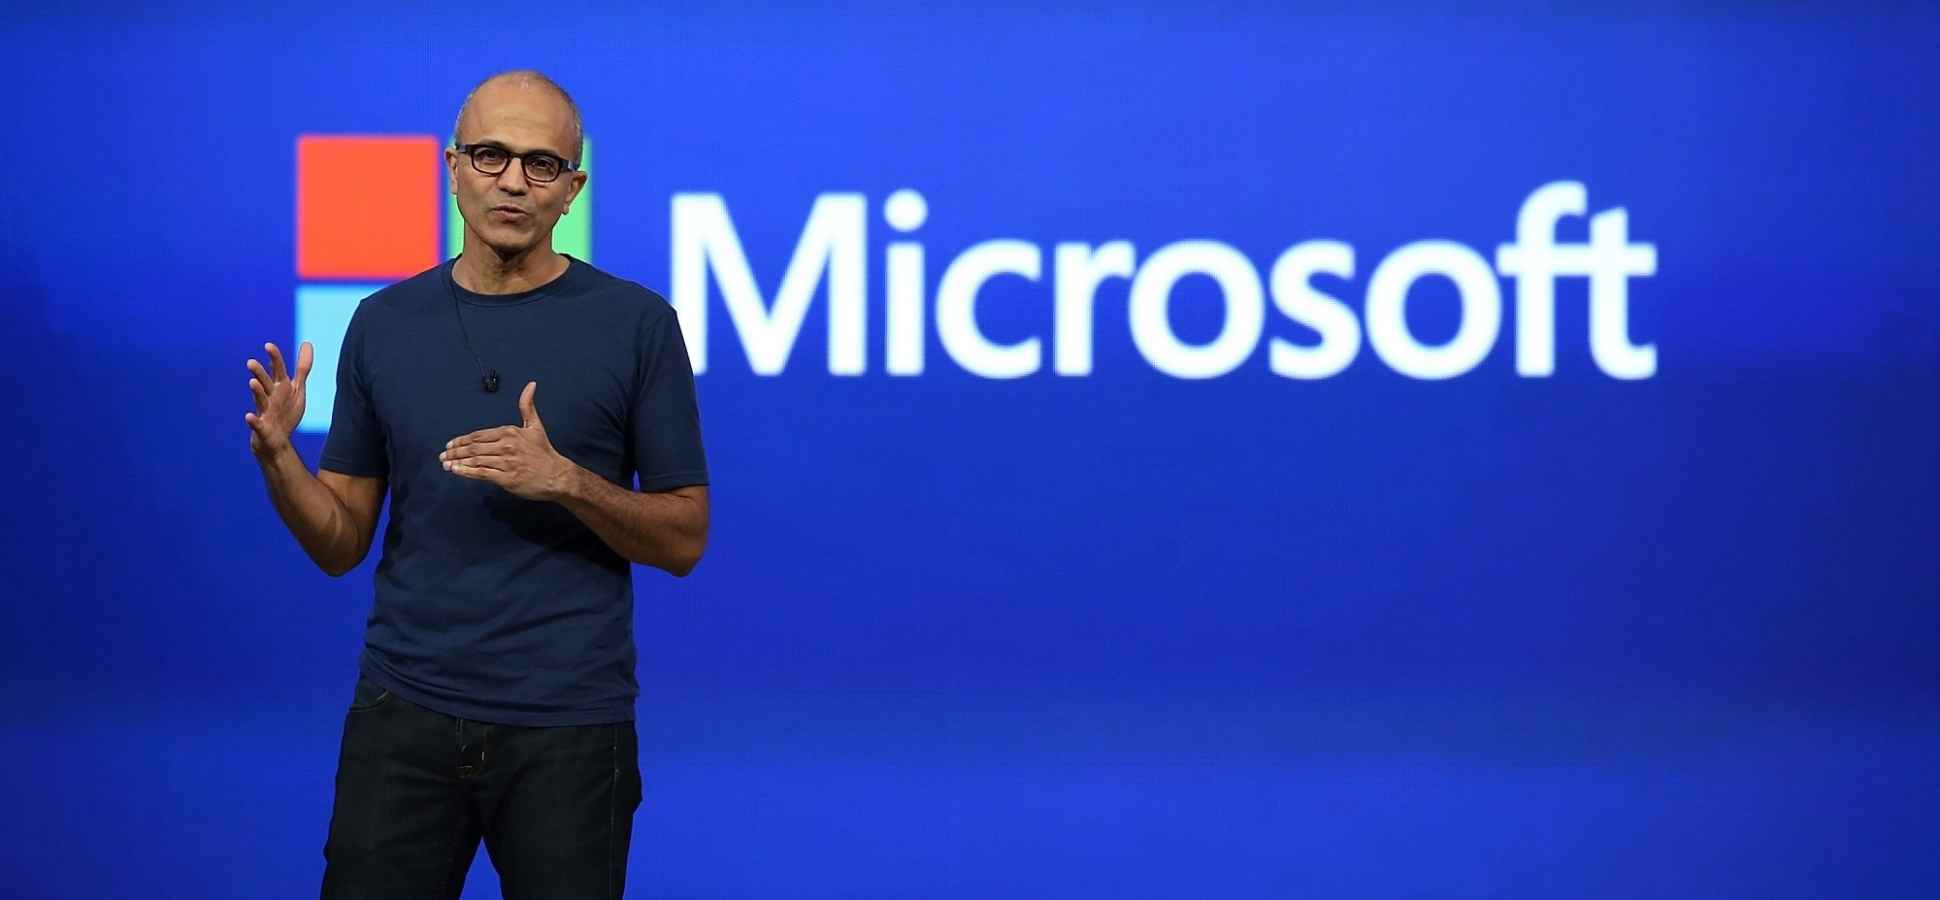 Microsoft CEO Satya Nadella Just Gave the Best Leadership Advice in 7 Words